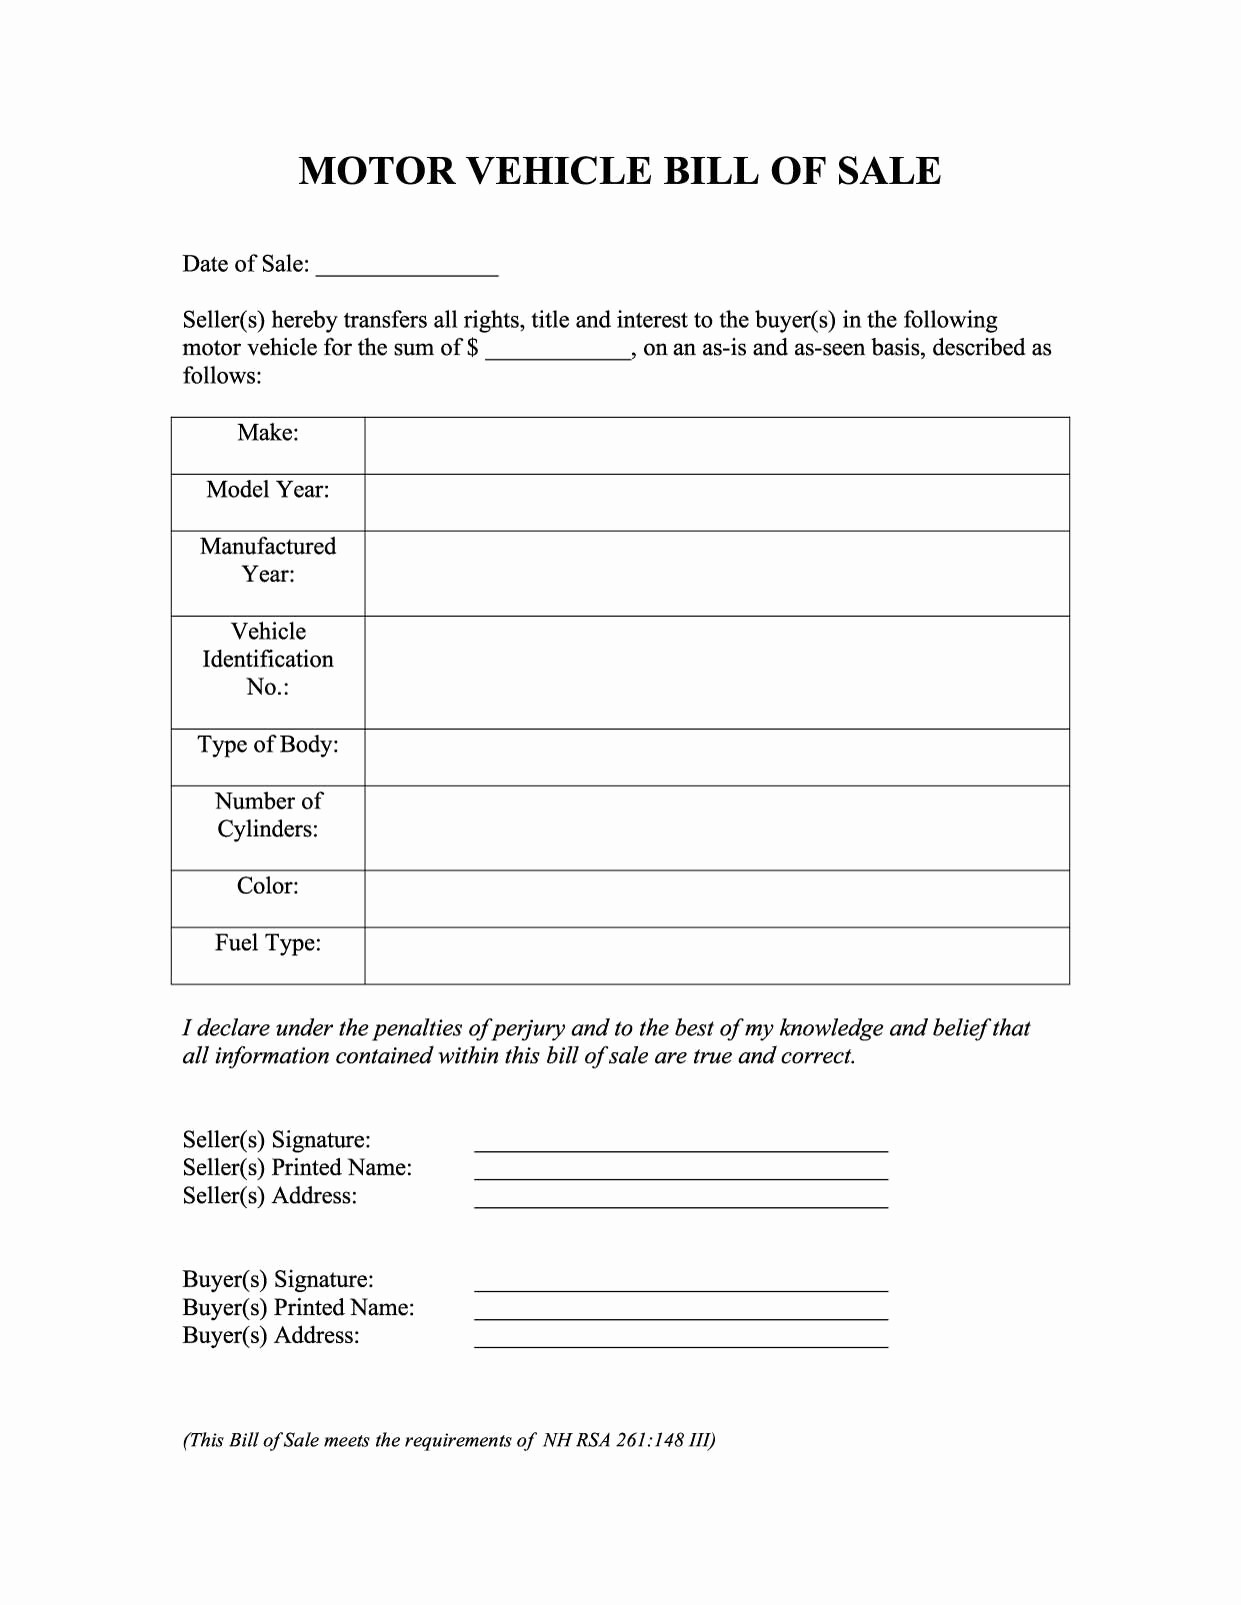 Bill Of Sale form Example Luxury 46 Fee Printable Bill Of Sale Templates Car Boat Gun